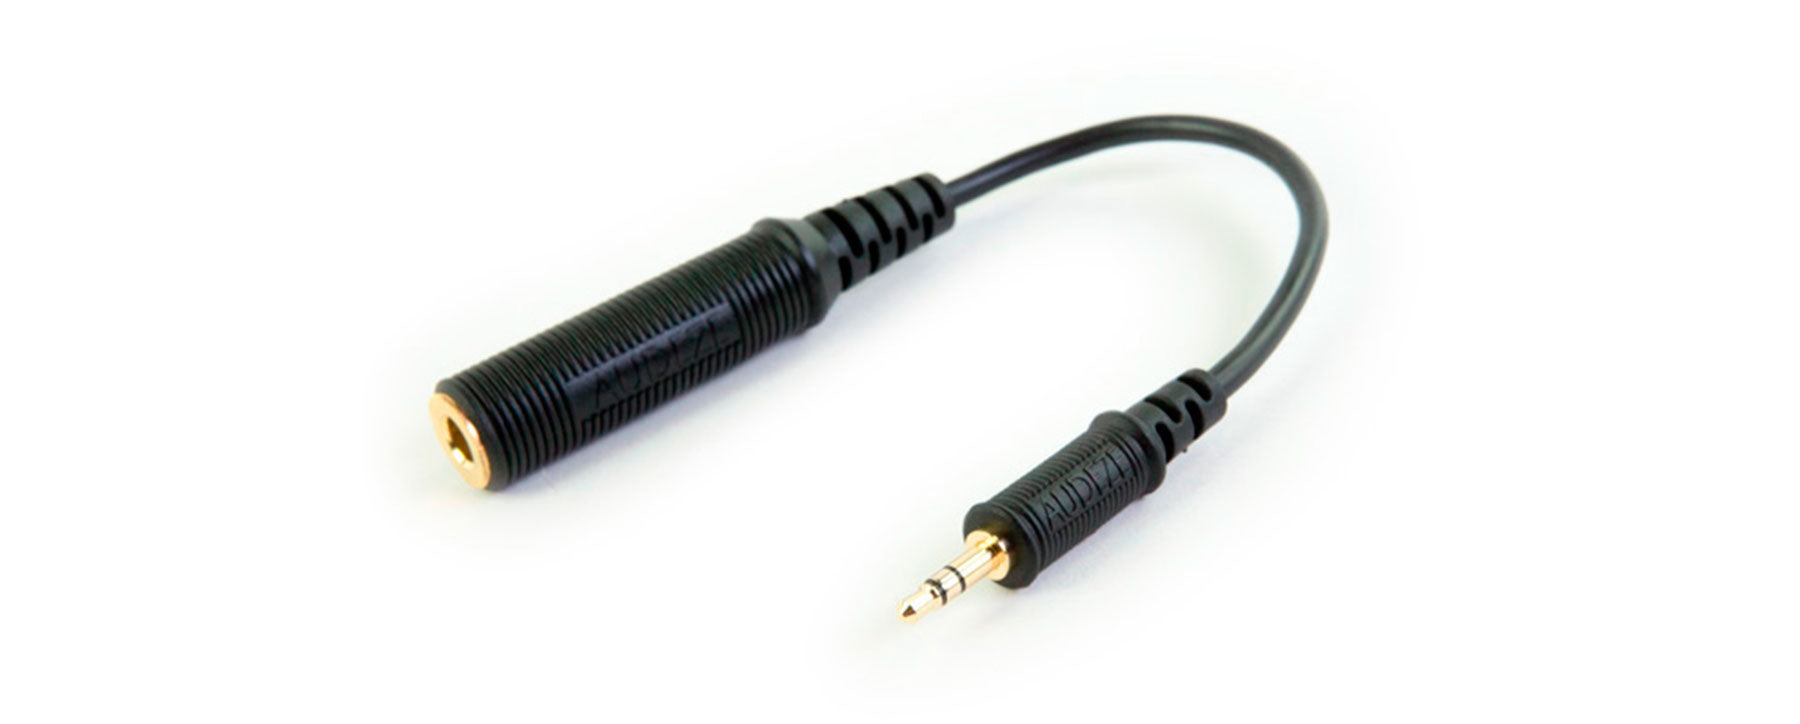 "1/4"" to 1/8"" stereo adapter"